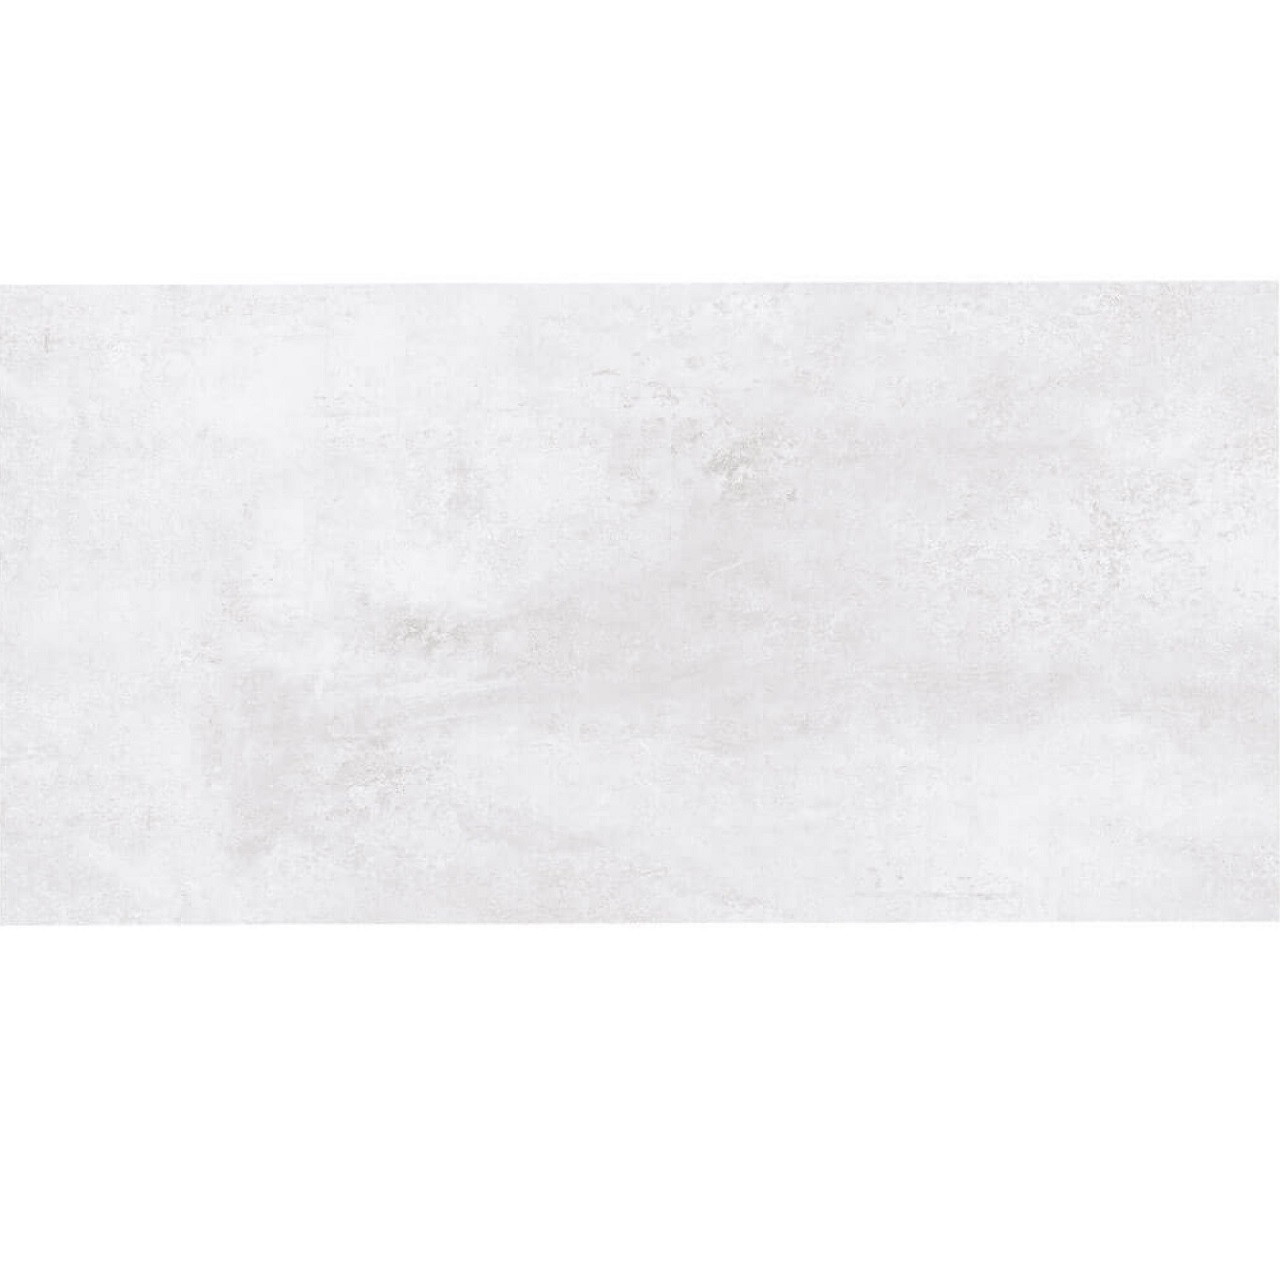 BCT High Definition Gravity White 29.8cm x 59.8cm Ceramic Wall Tile - BCT52616C